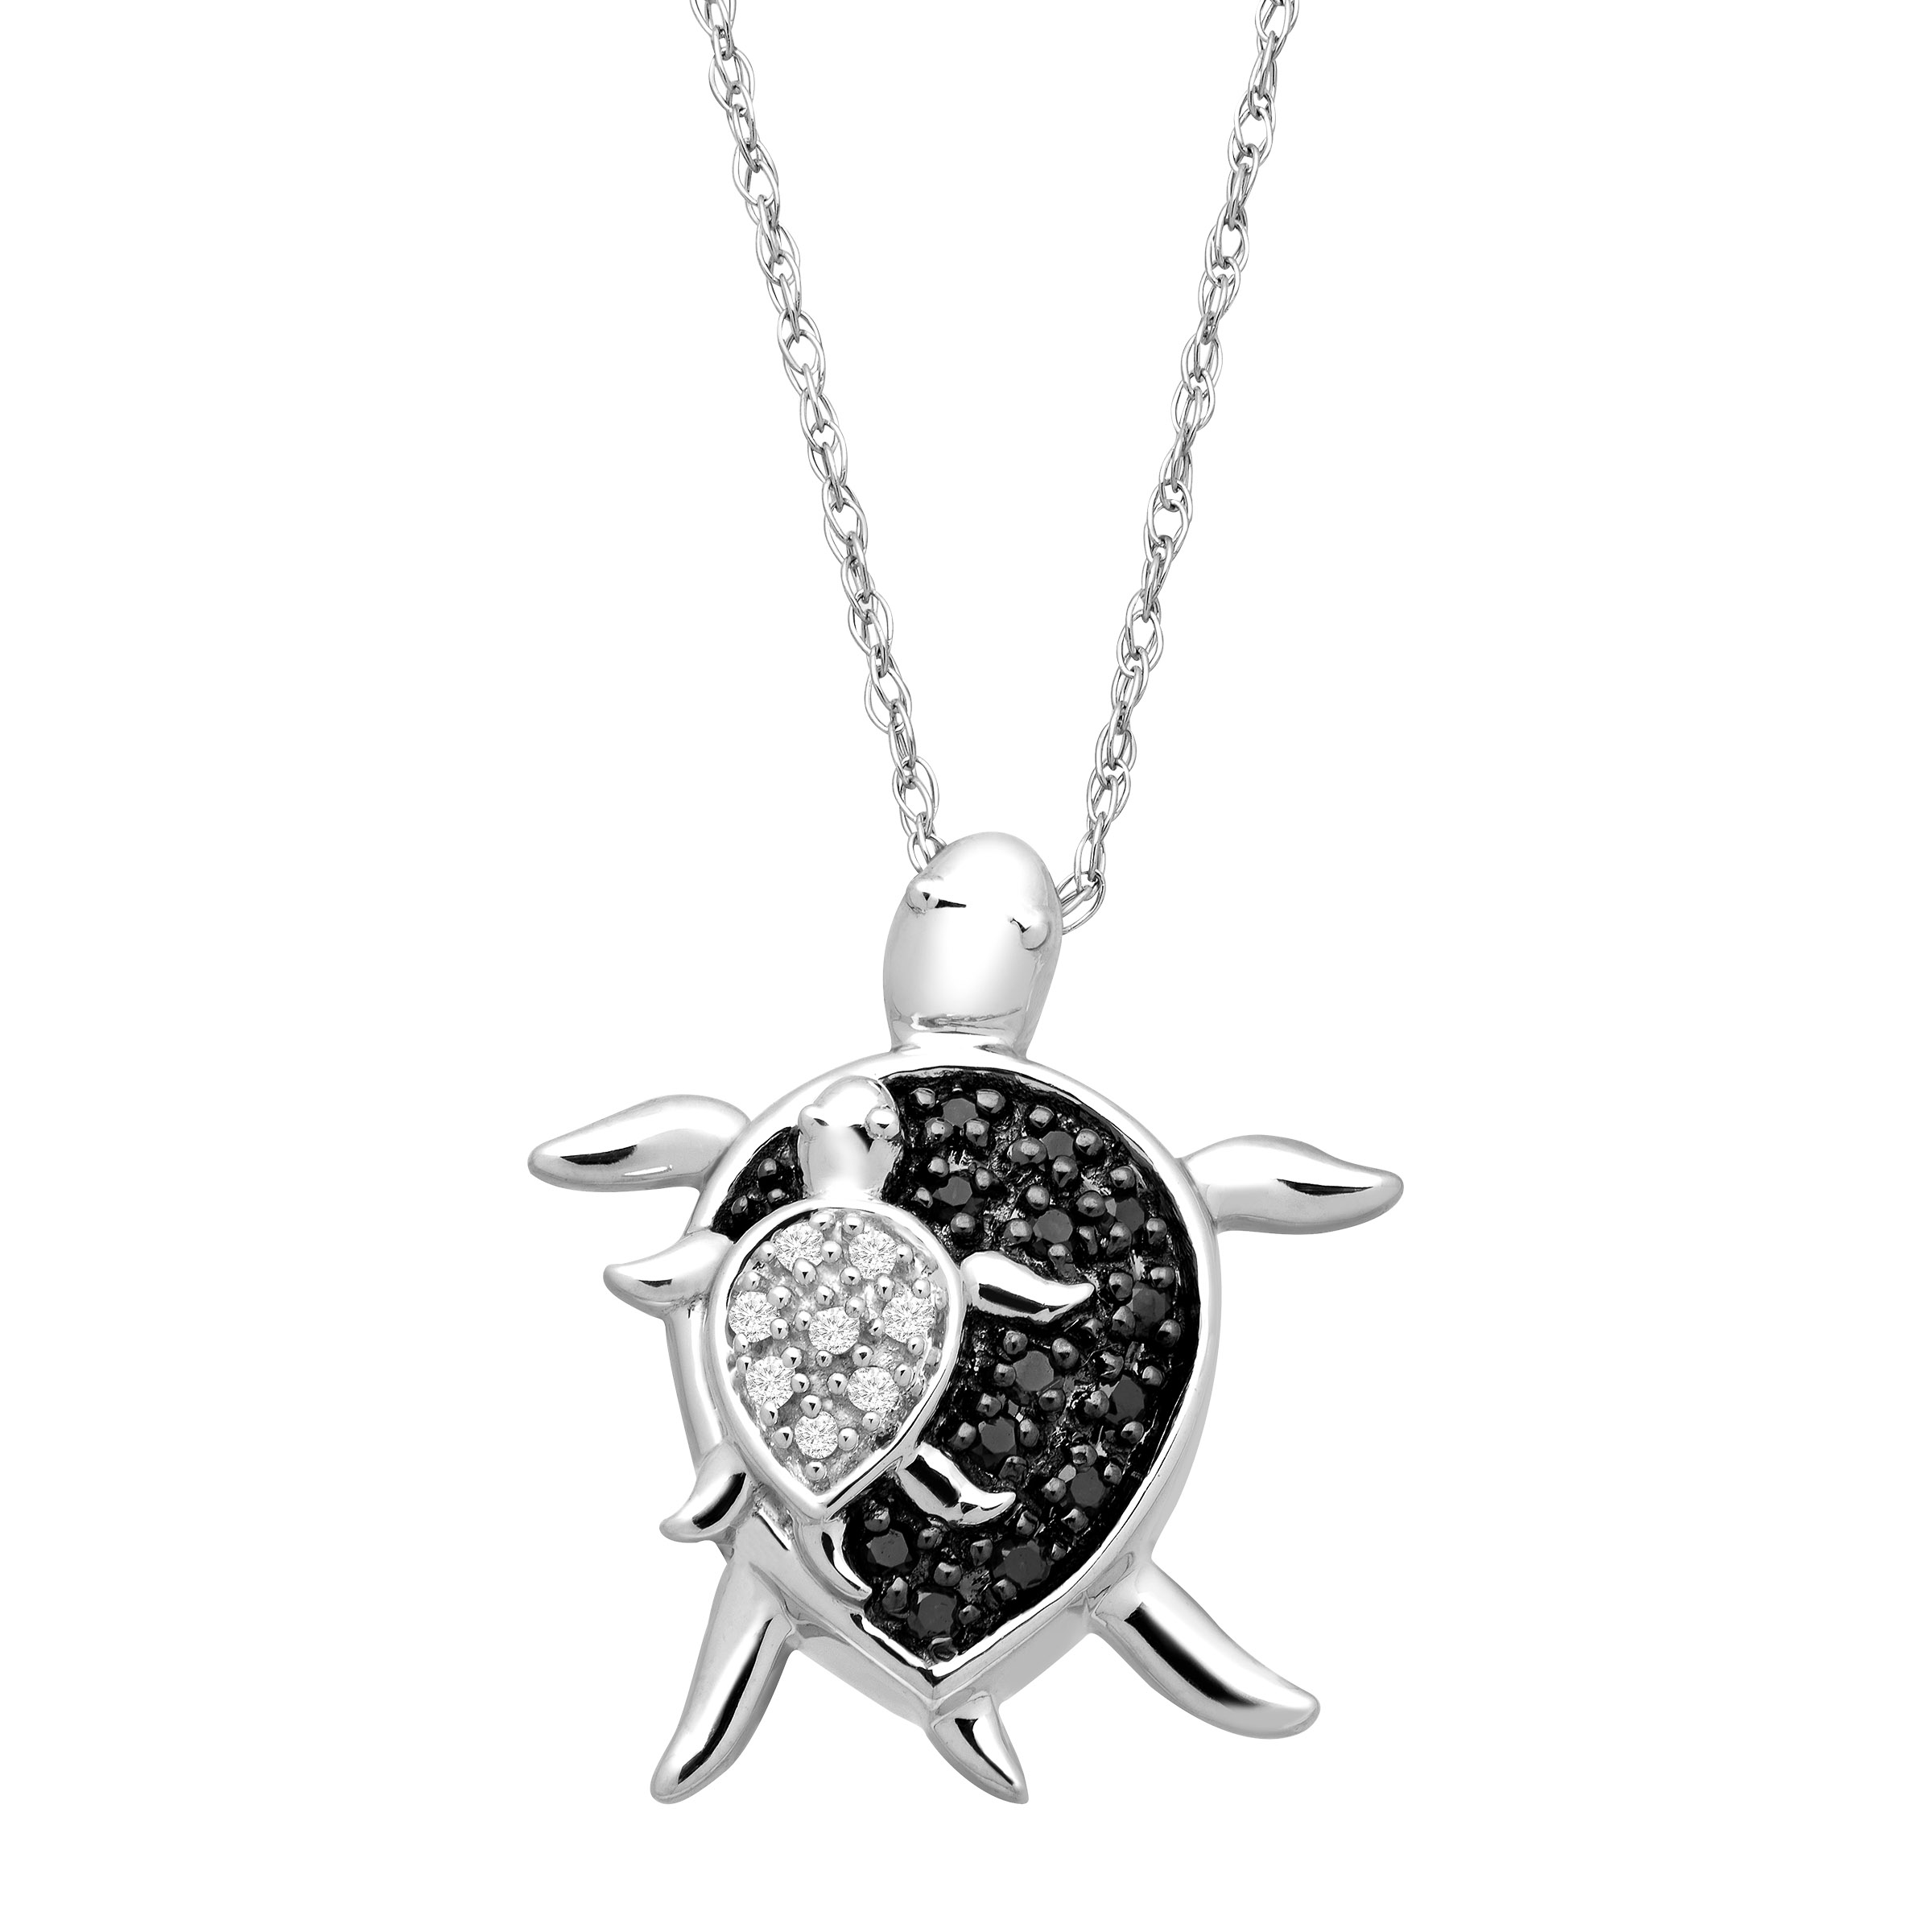 Mother & Baby Turtle Pendant Necklace with Black & White Diamonds in 10kt White Gold by Richline Group